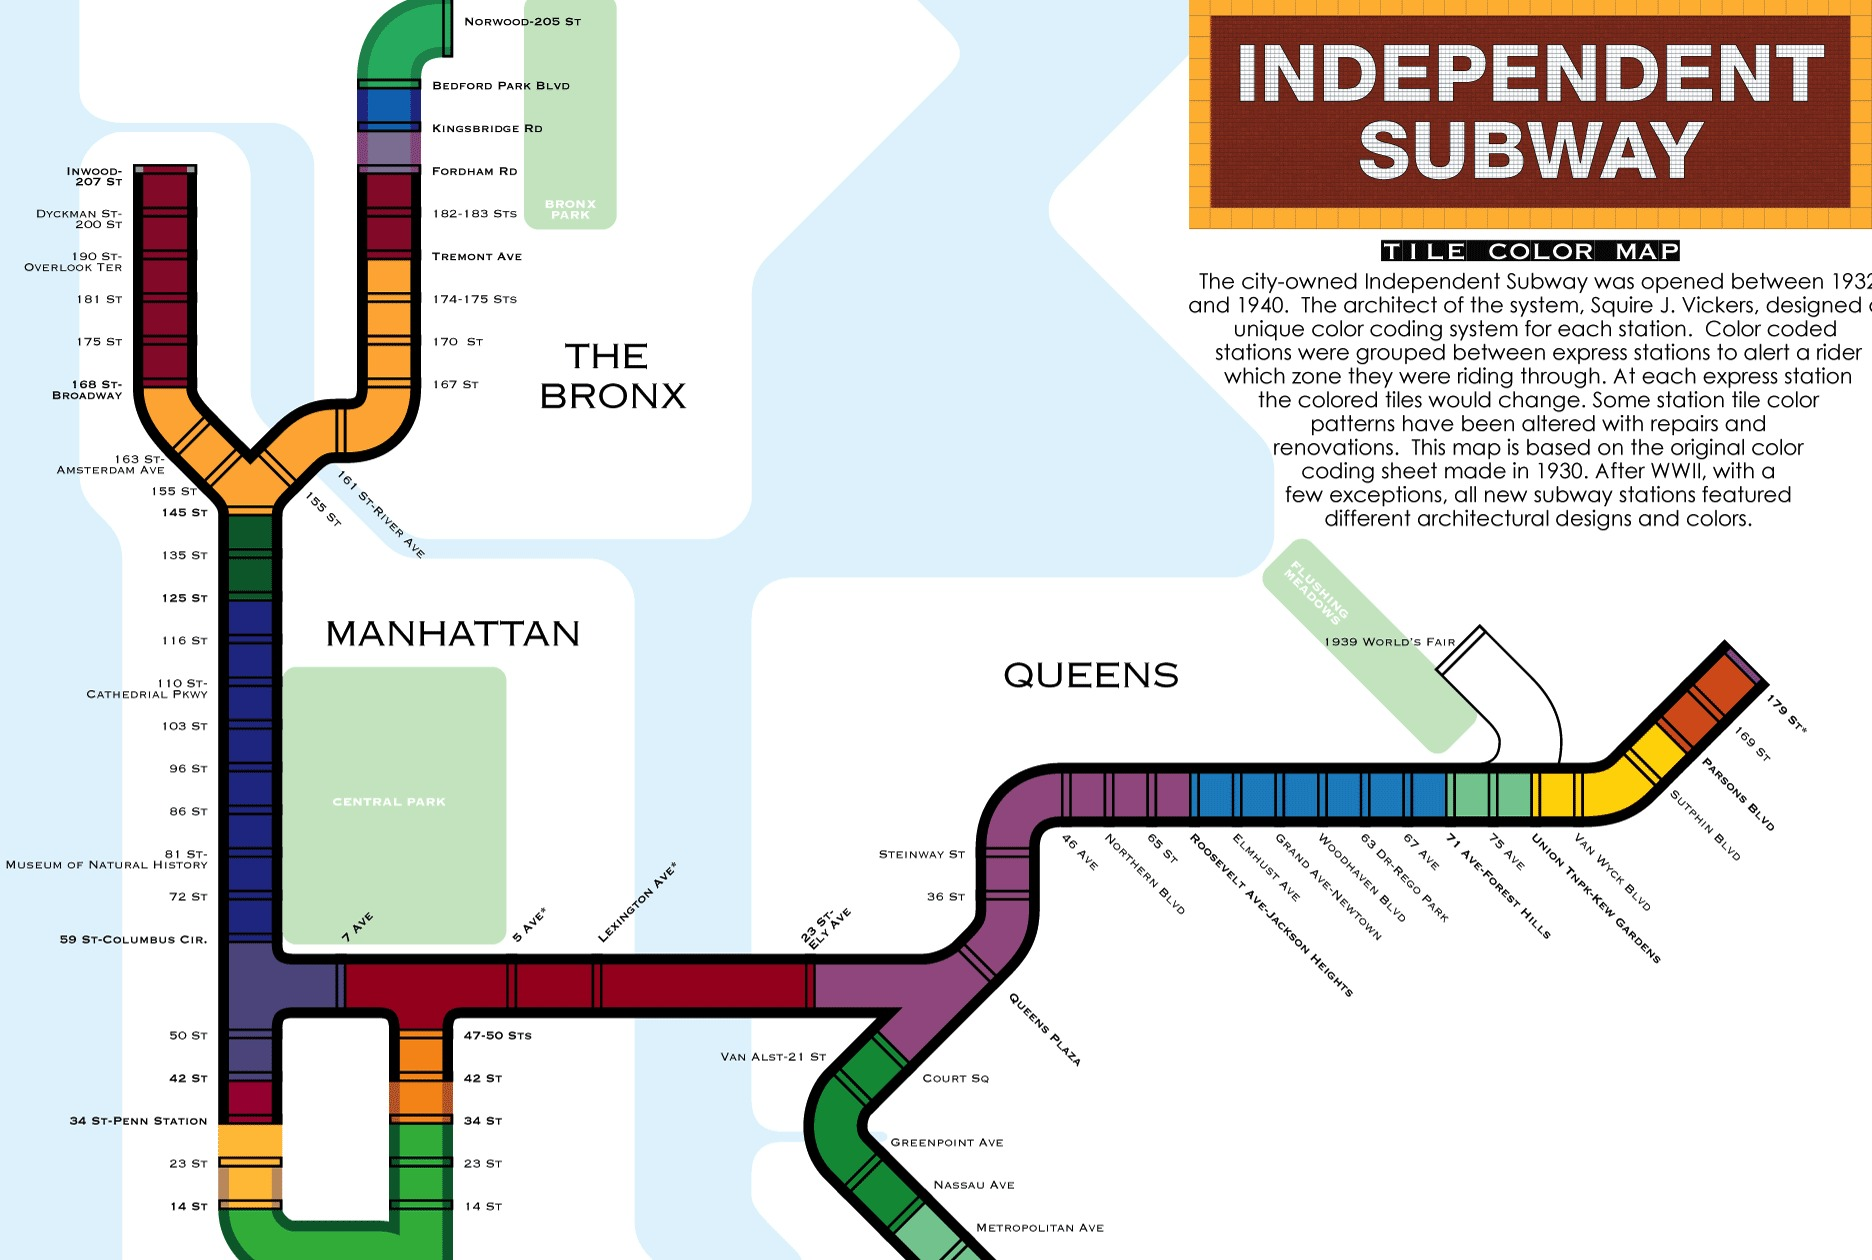 42Nd Street Subway Map